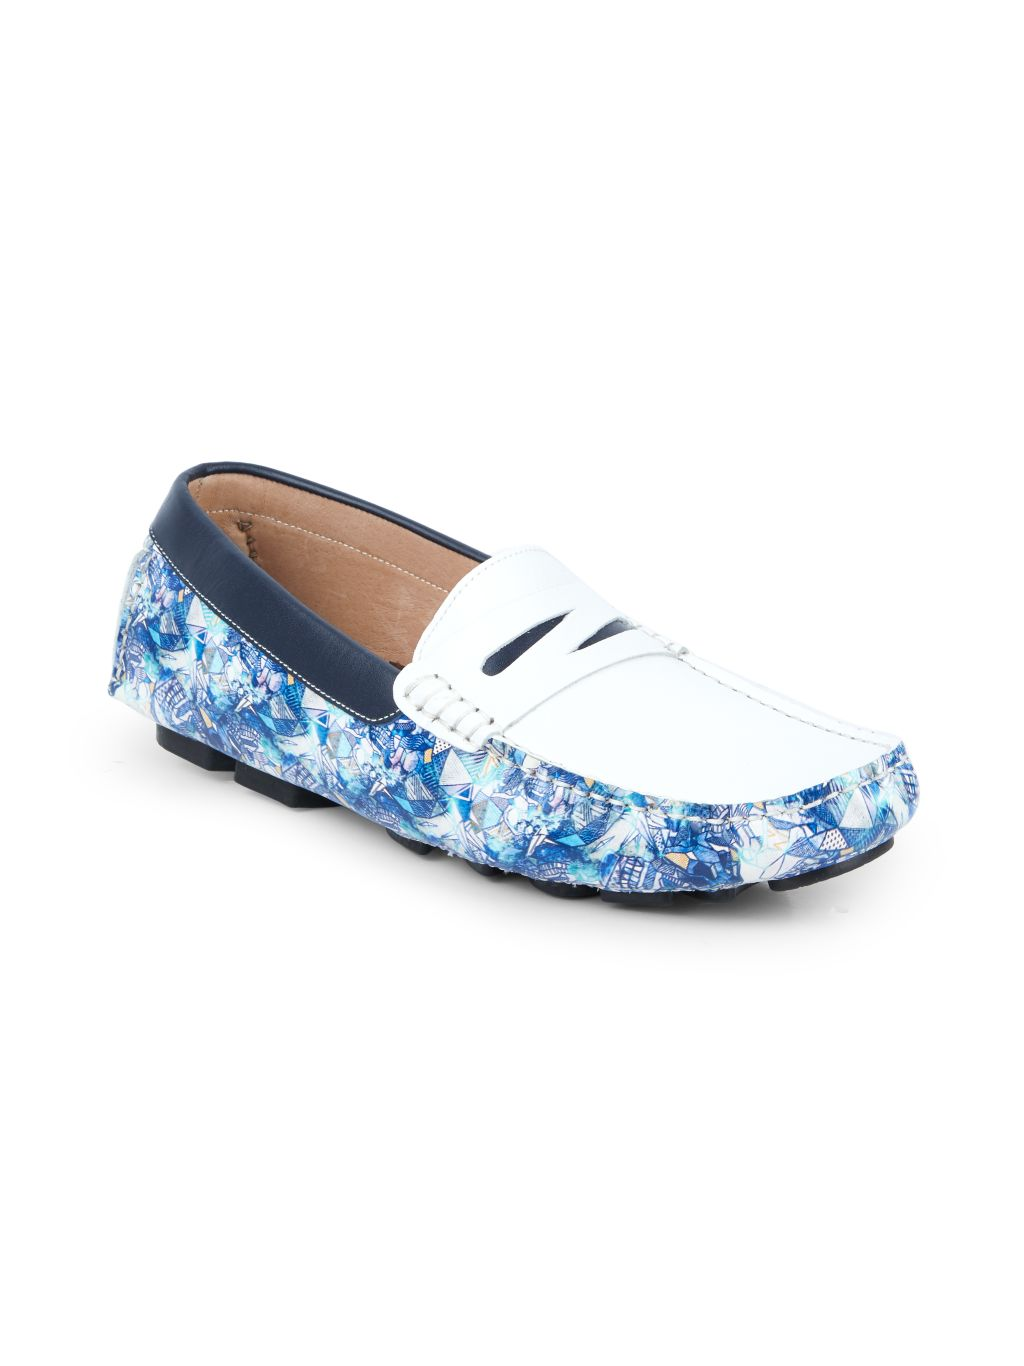 Robert Graham Doggerland-Print Leather Driving Loafers